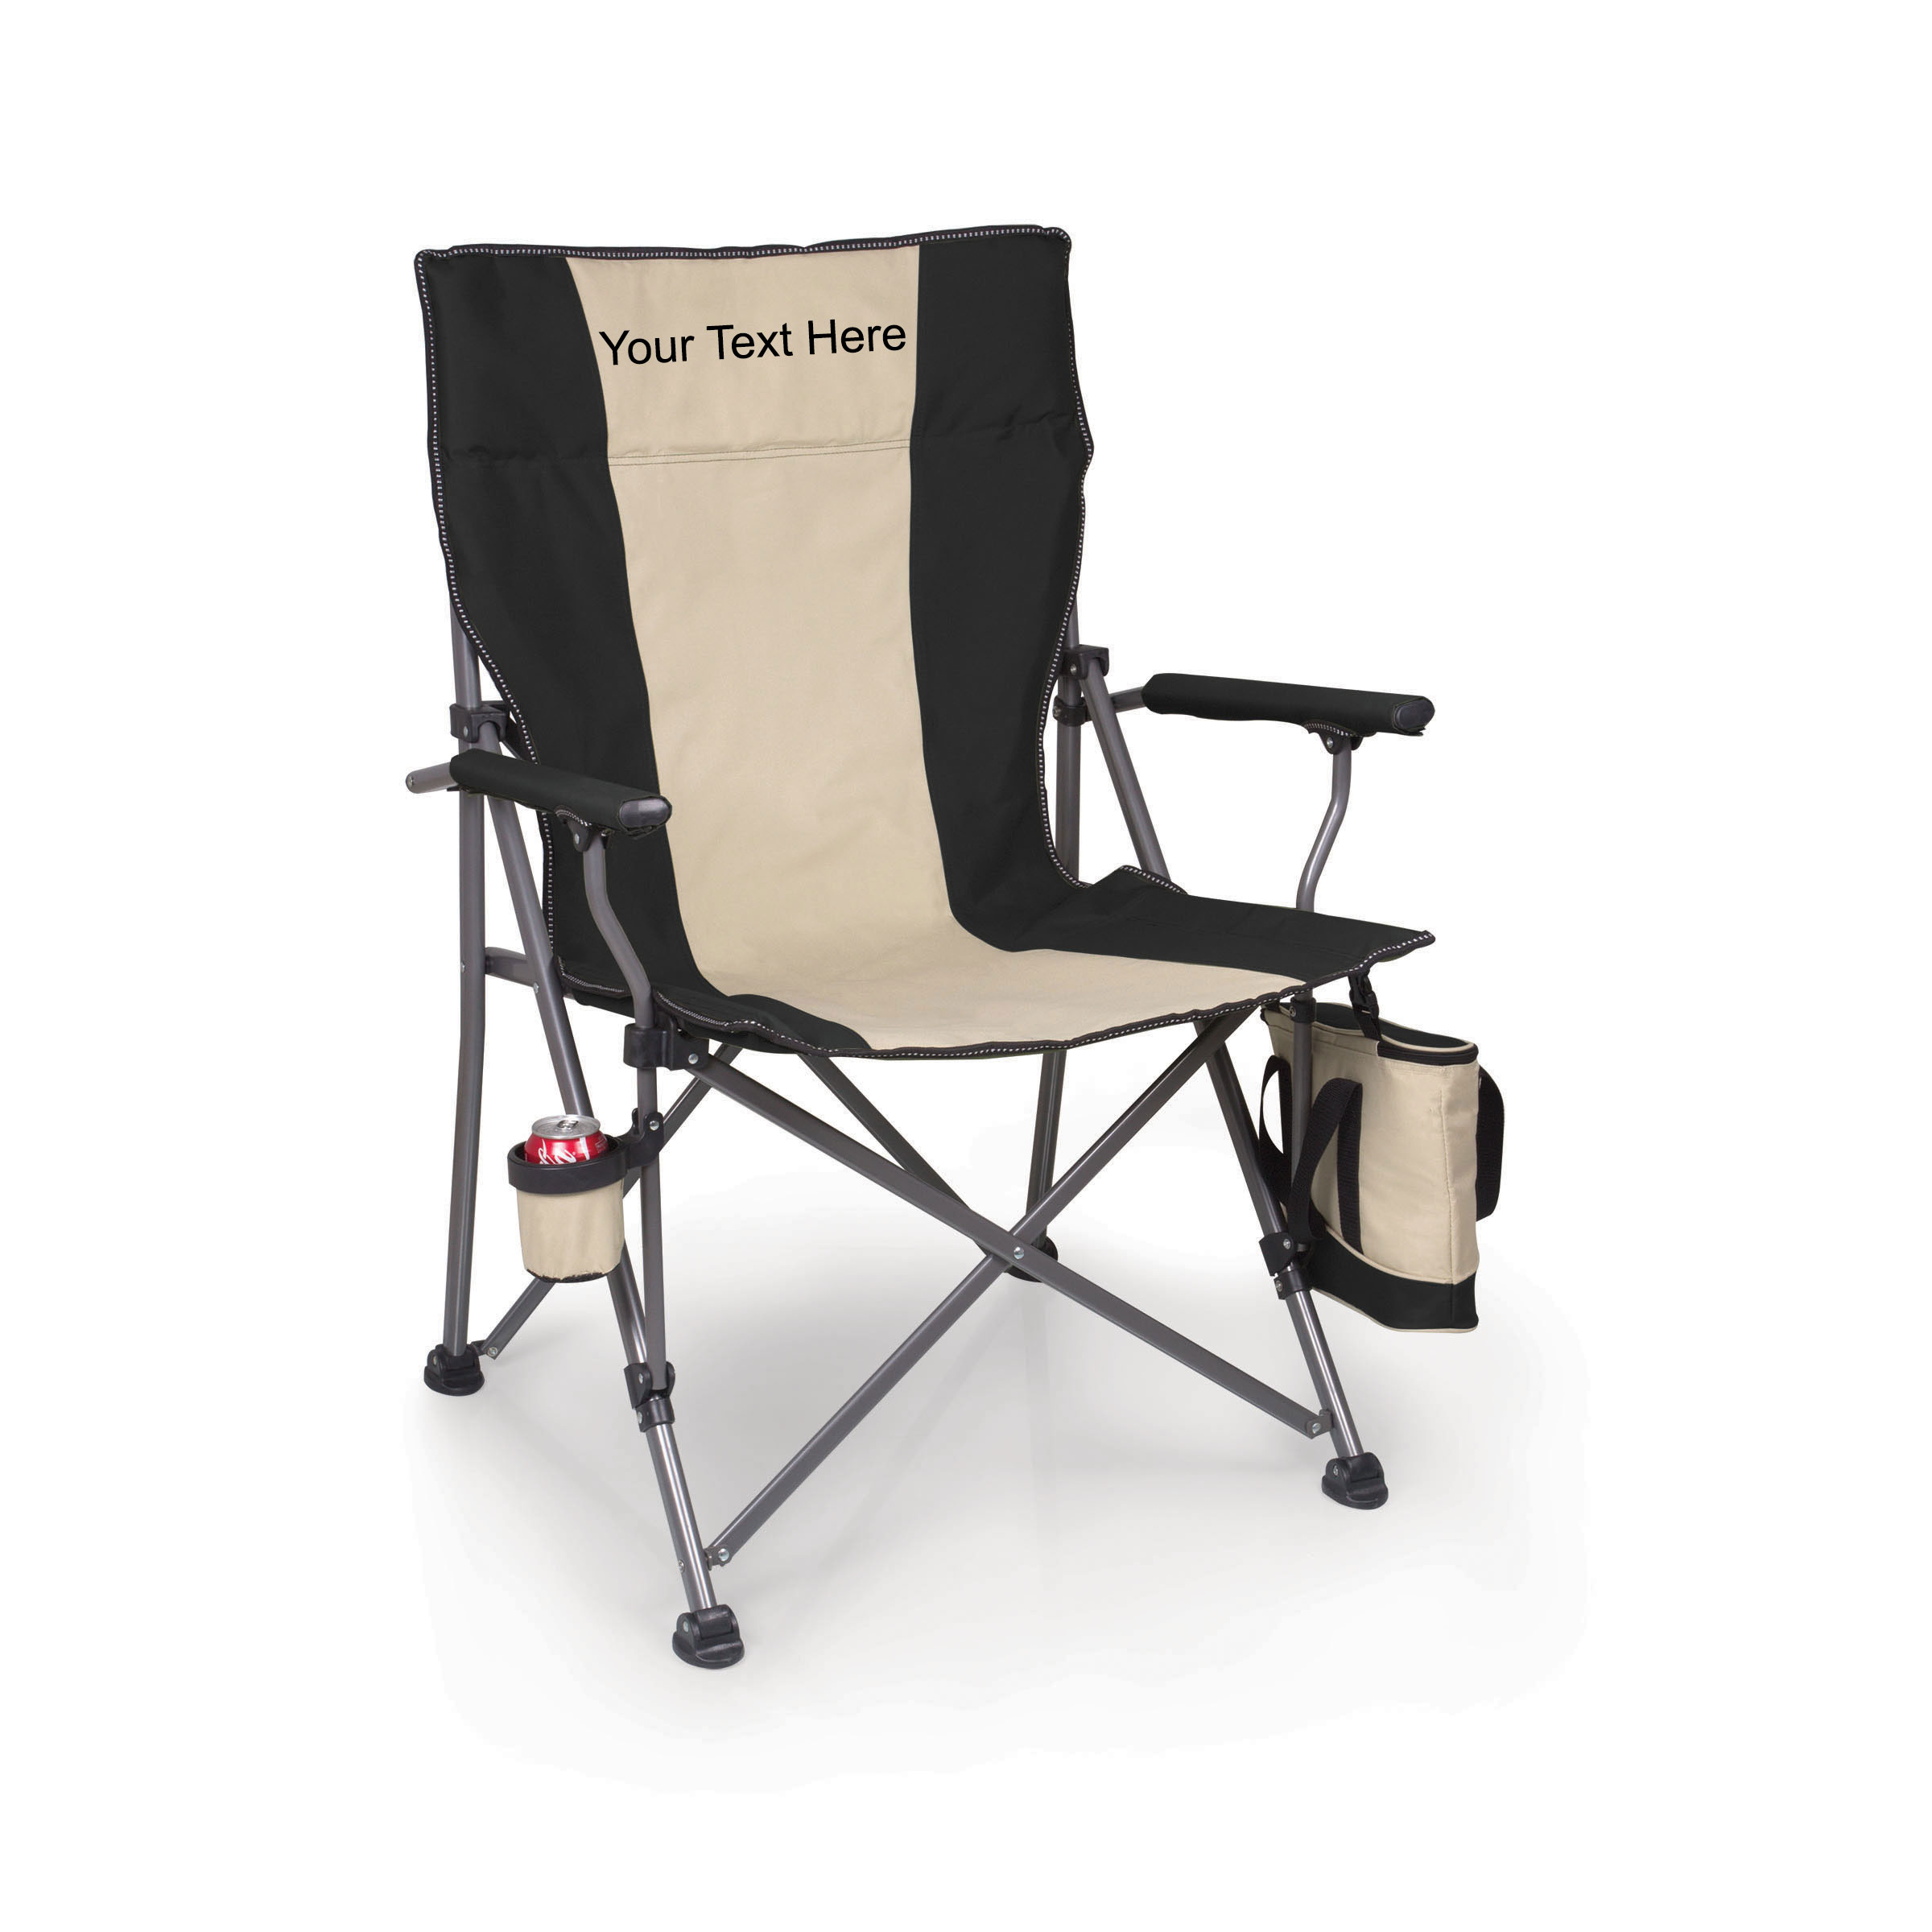 IMPRINTED Personalized Big Bear Camp Chair by Picnic Time